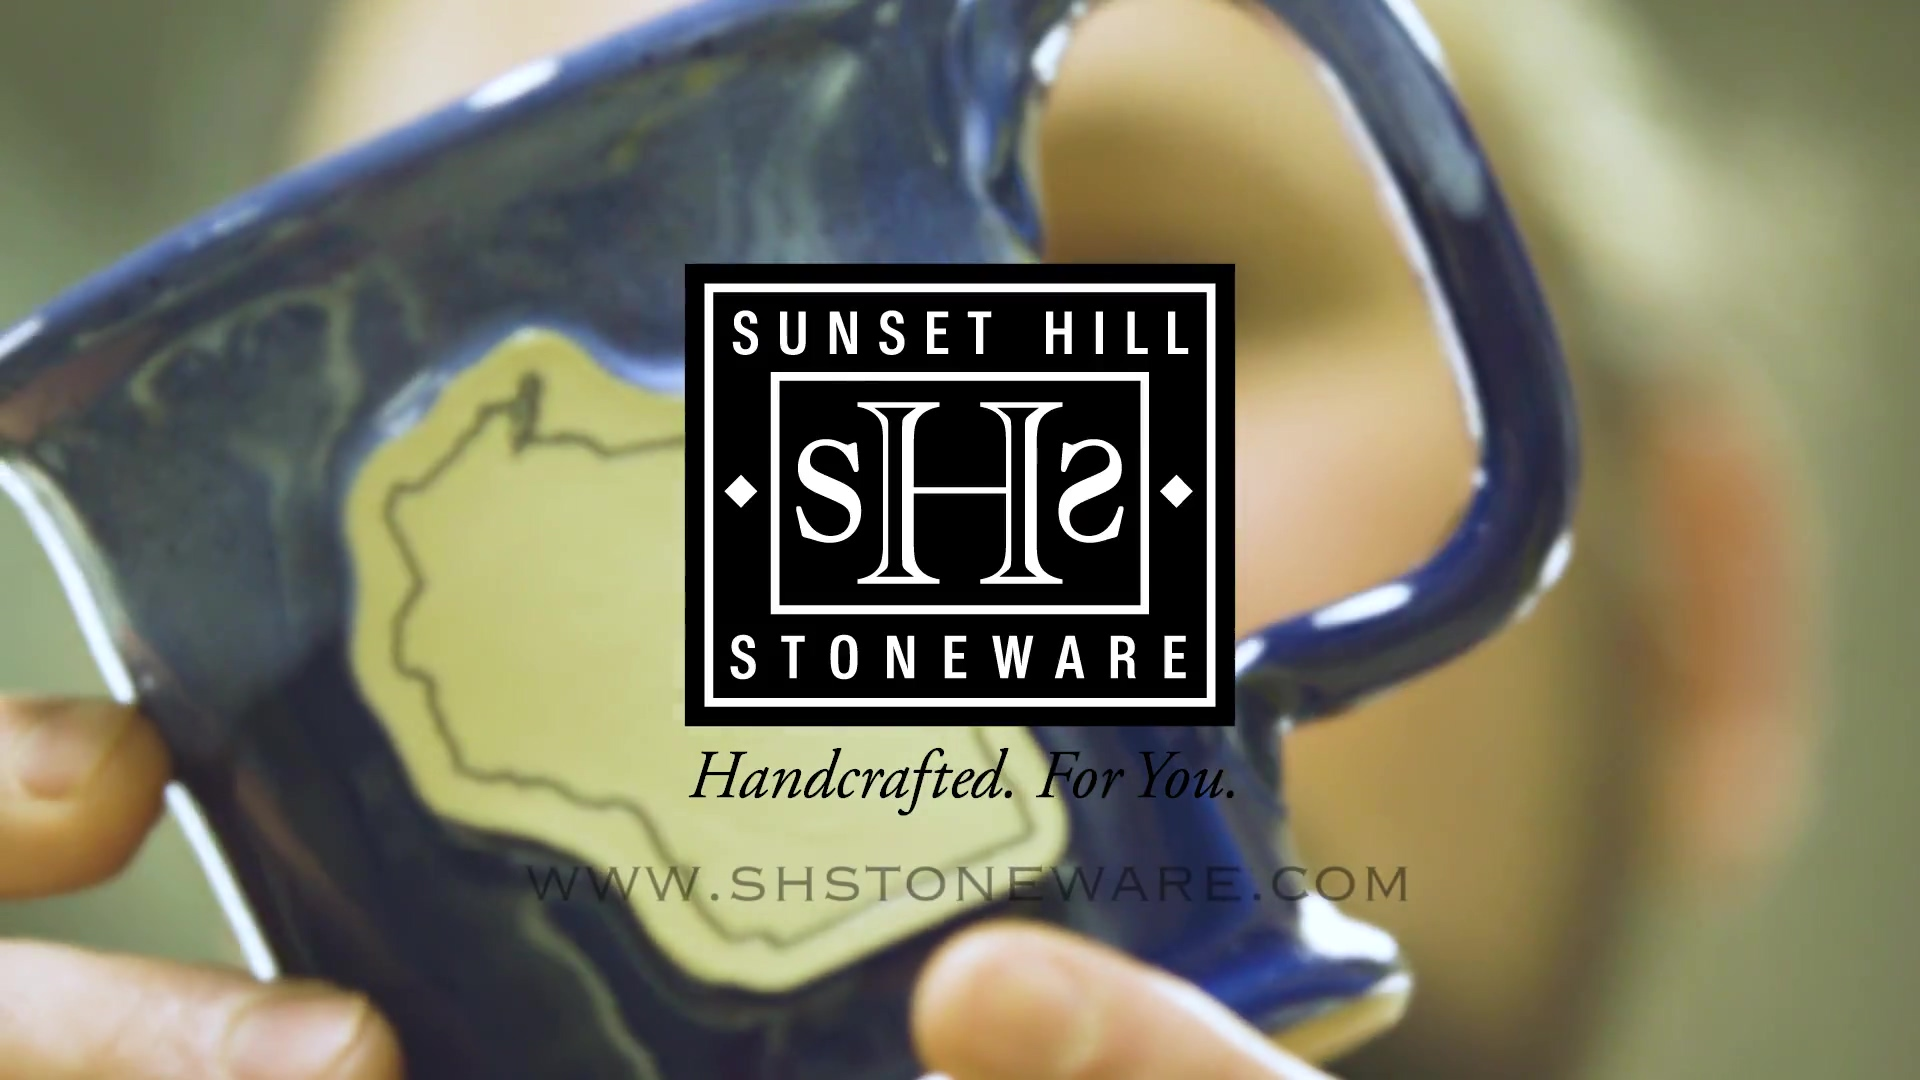 Quality at Sunset Hill Stoneware